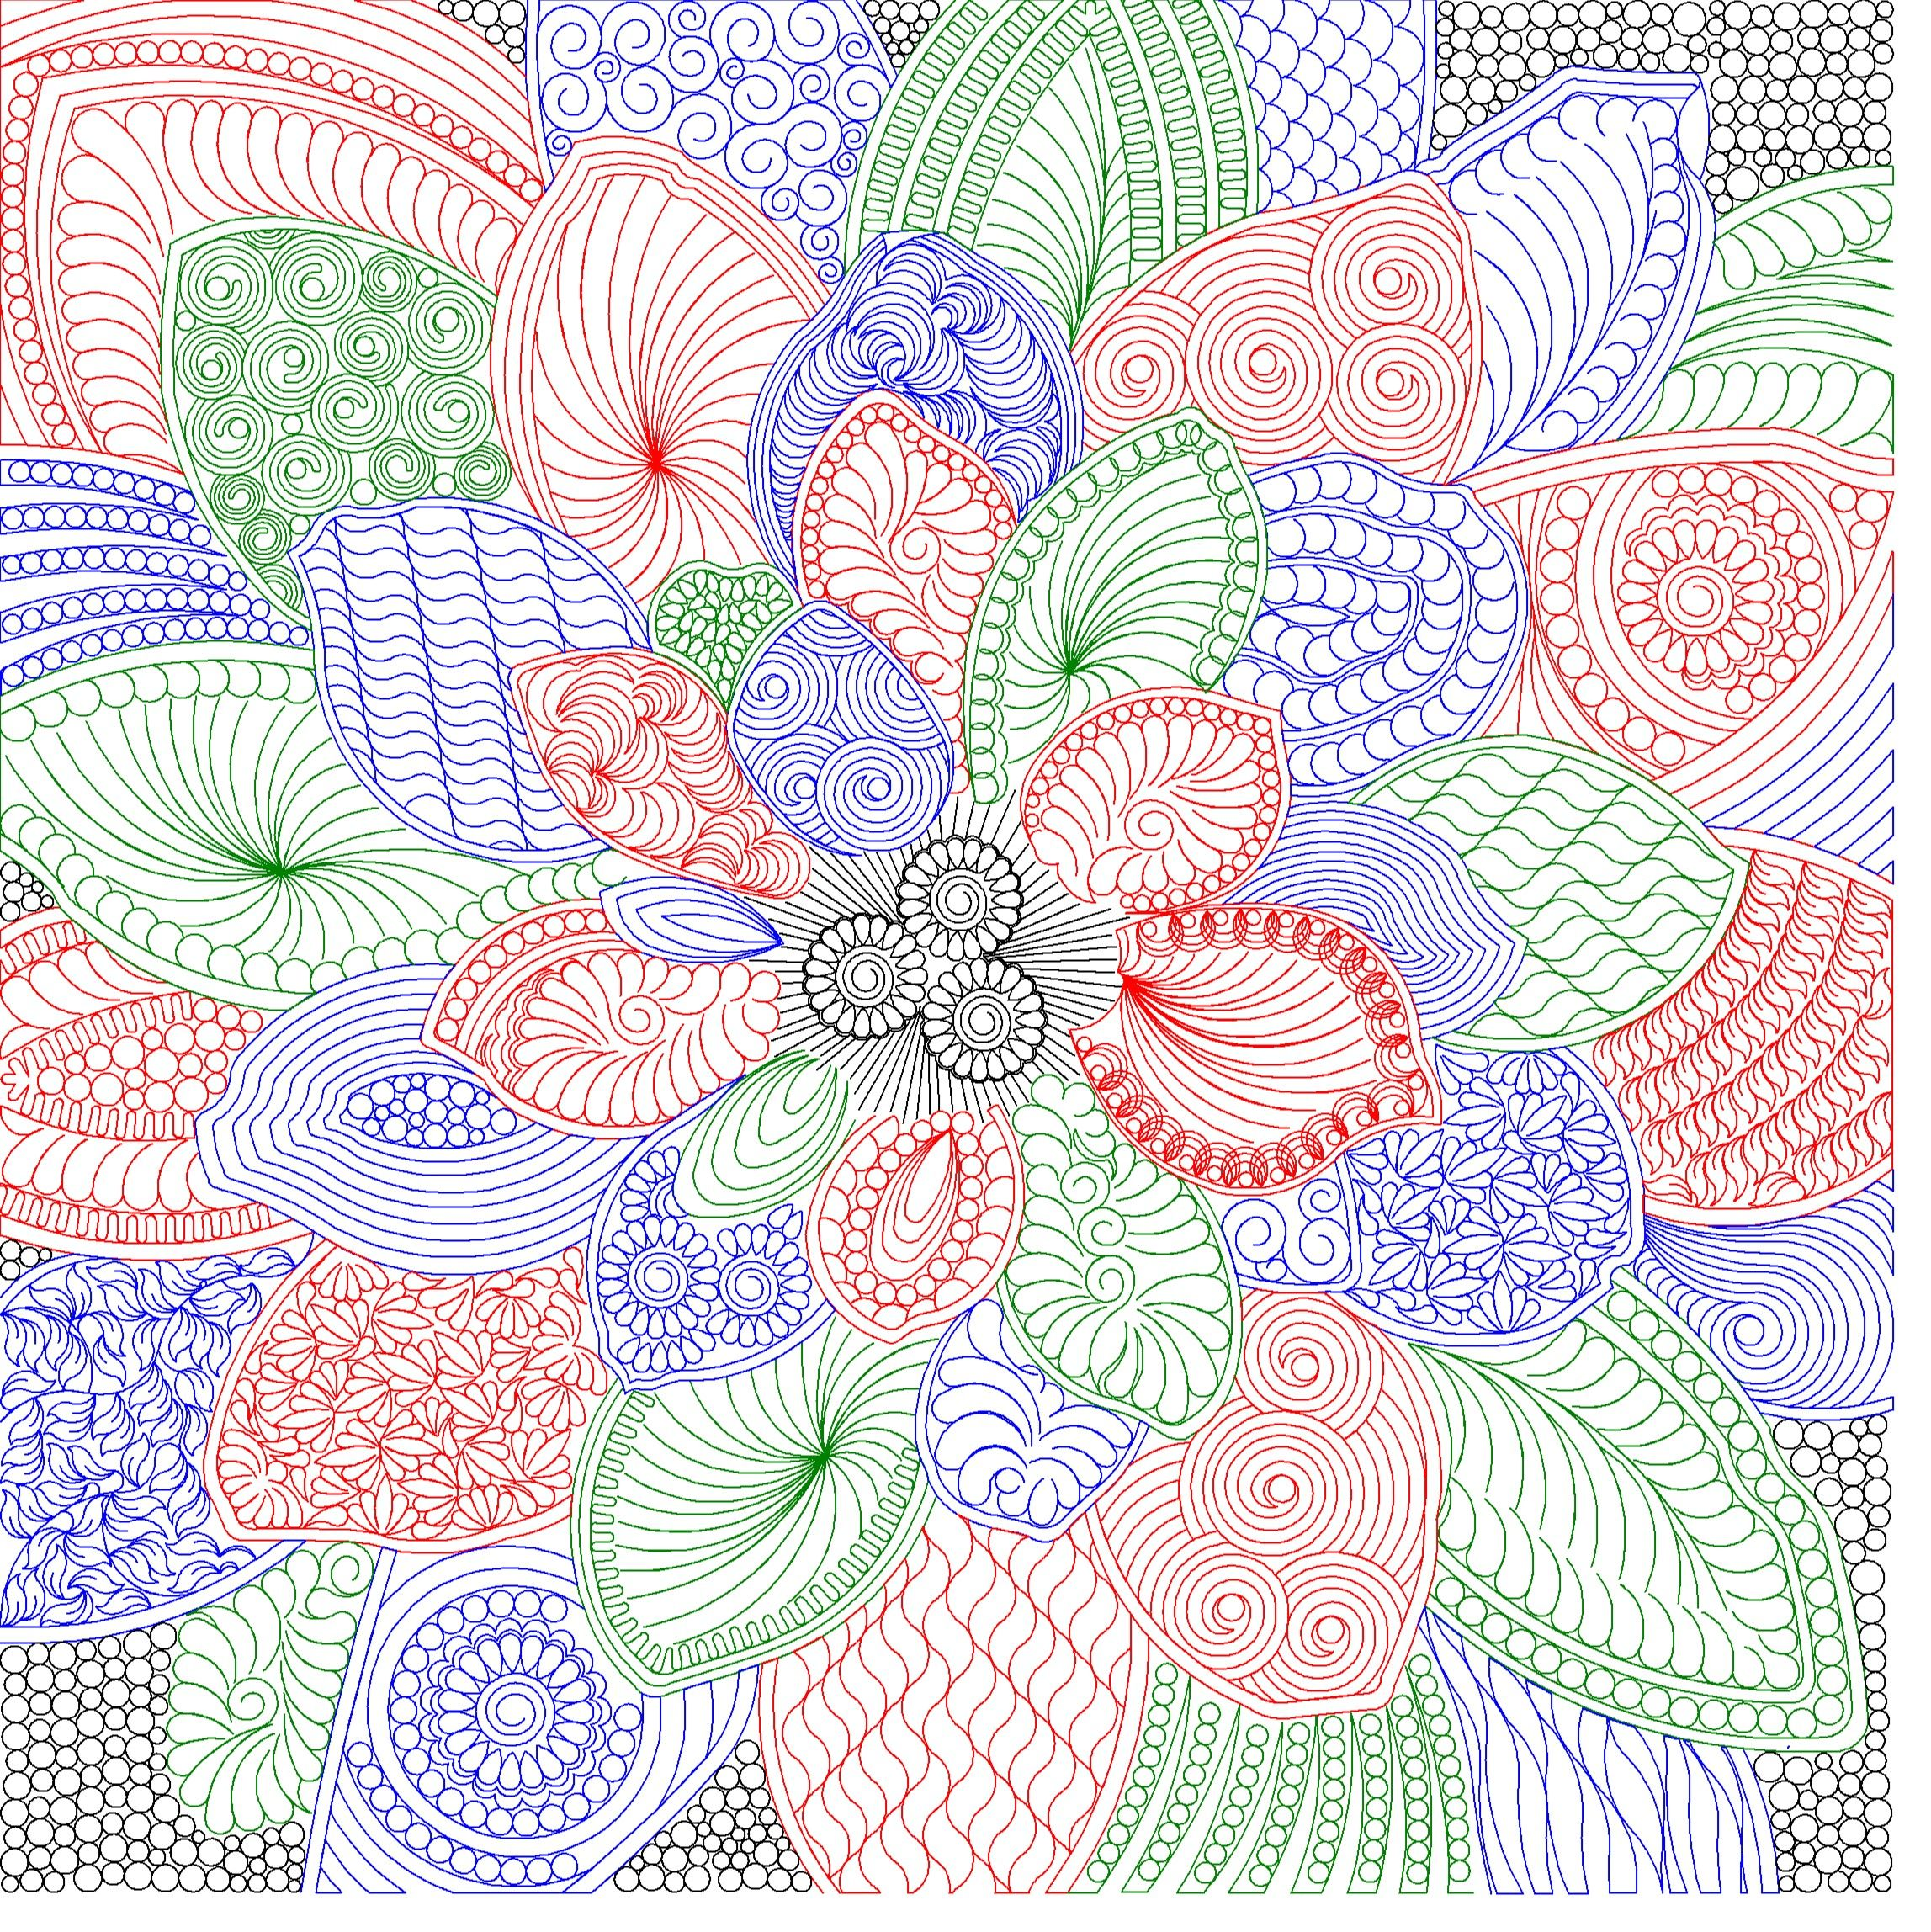 Computerized Digitized Quilting Patterns For The Fabric